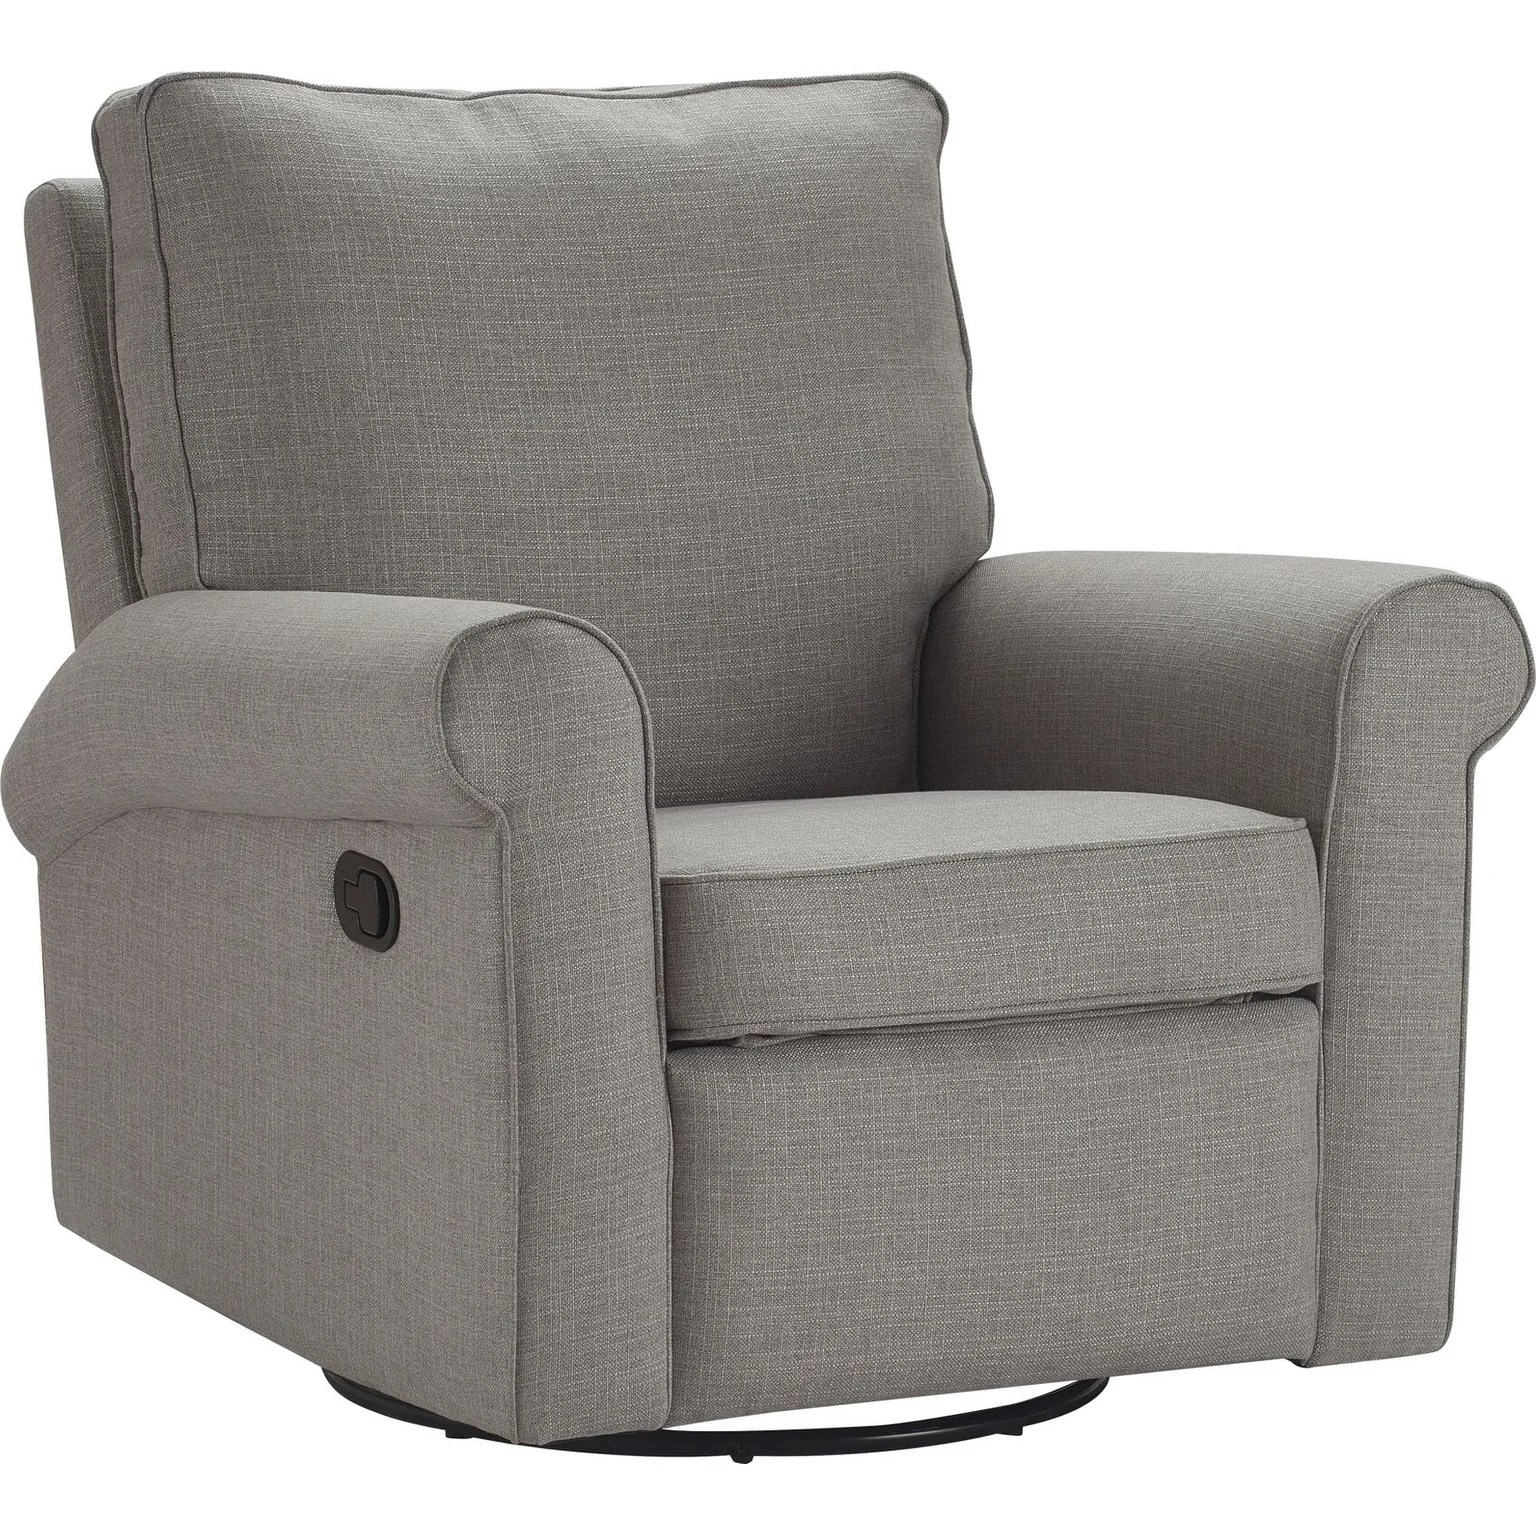 Swivel Recliner Chairs Truly Home Hughes Swivel Recliner Chair